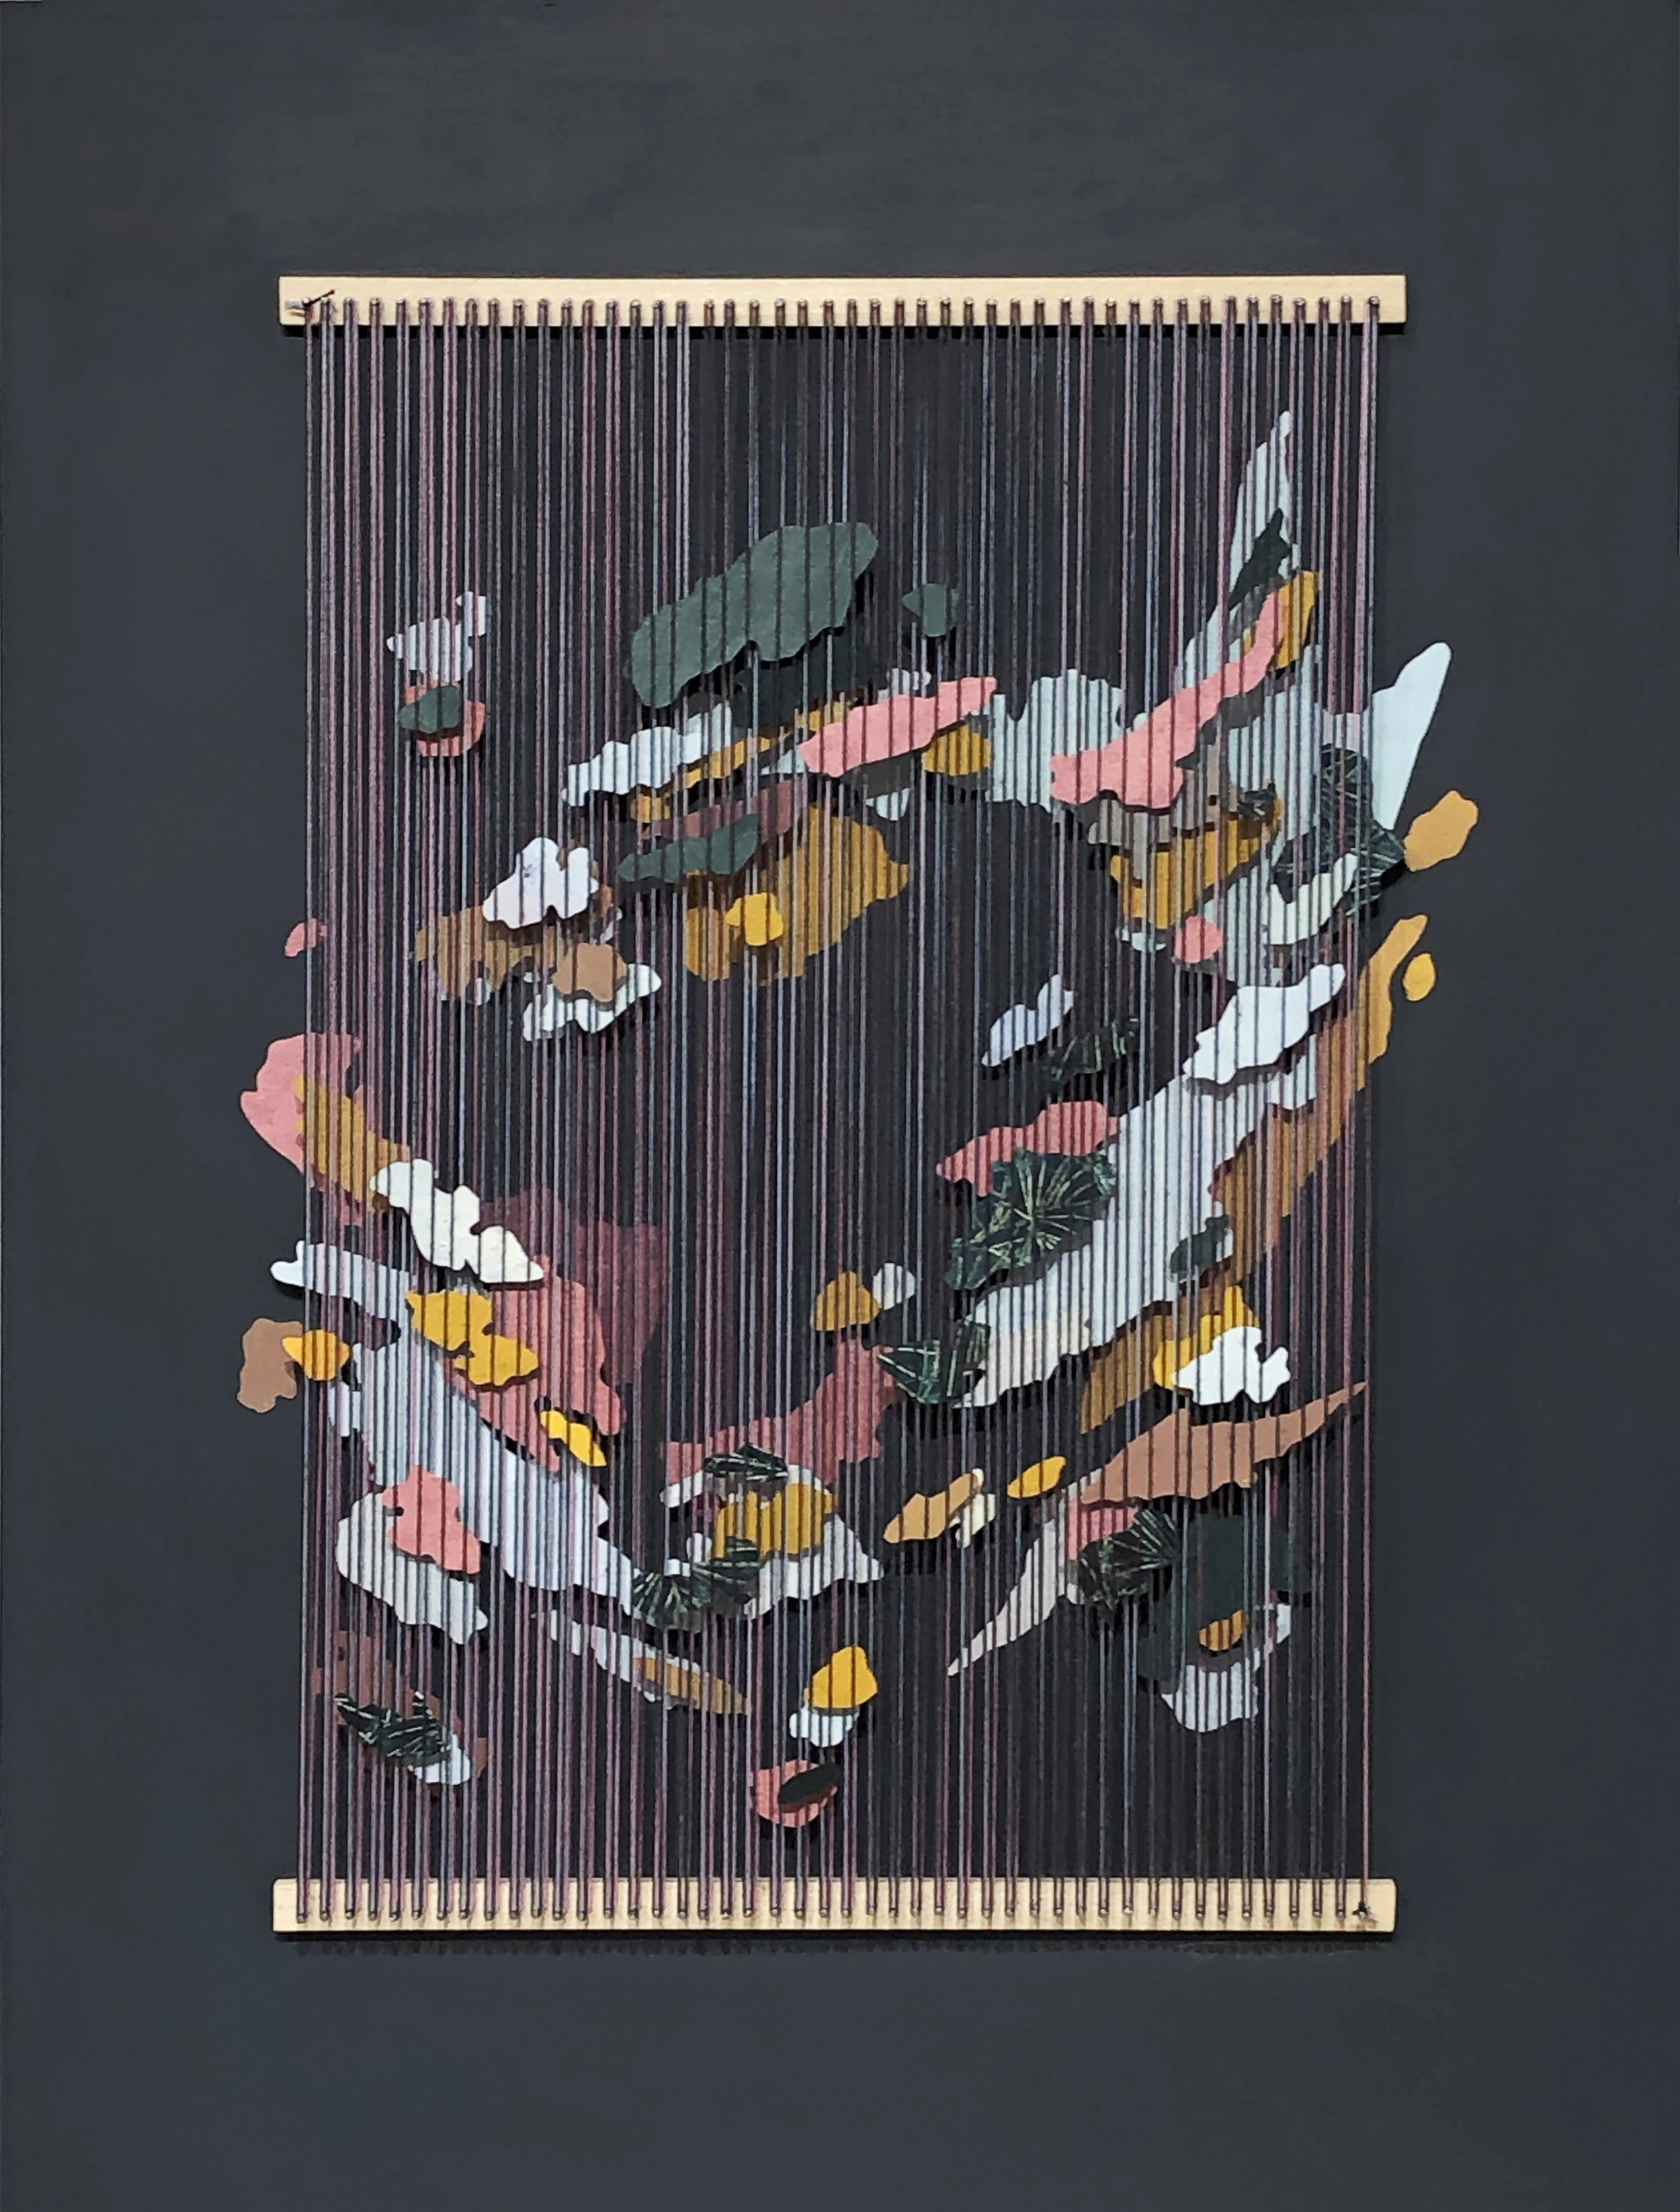 Tegan Brozyna Roberts,  Blönduós V , 2019, Painted paper, thread, nails and wood, 24 1/2 x 18 3/4 inches